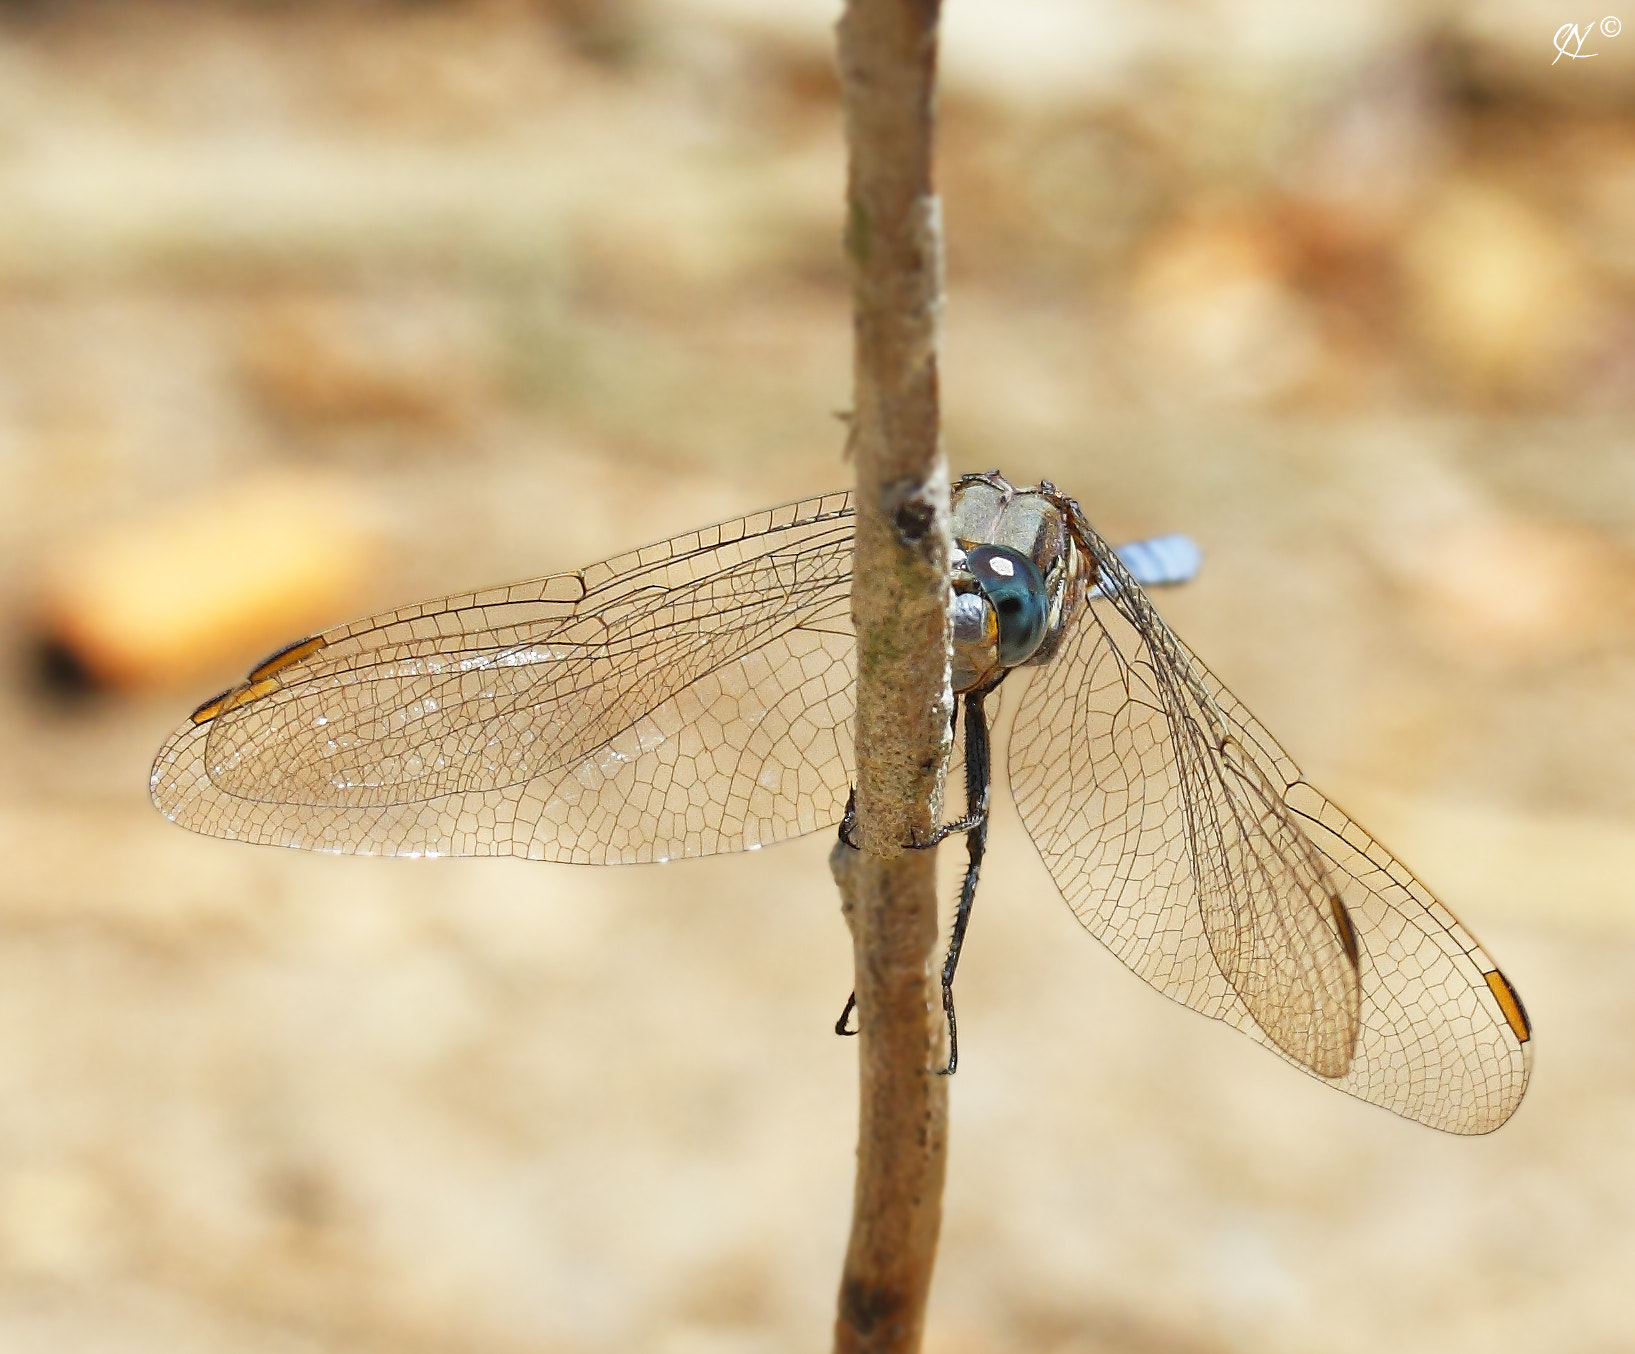 Photograph Dragonfly / Libellule by Nabil CHETTOUH on 500px